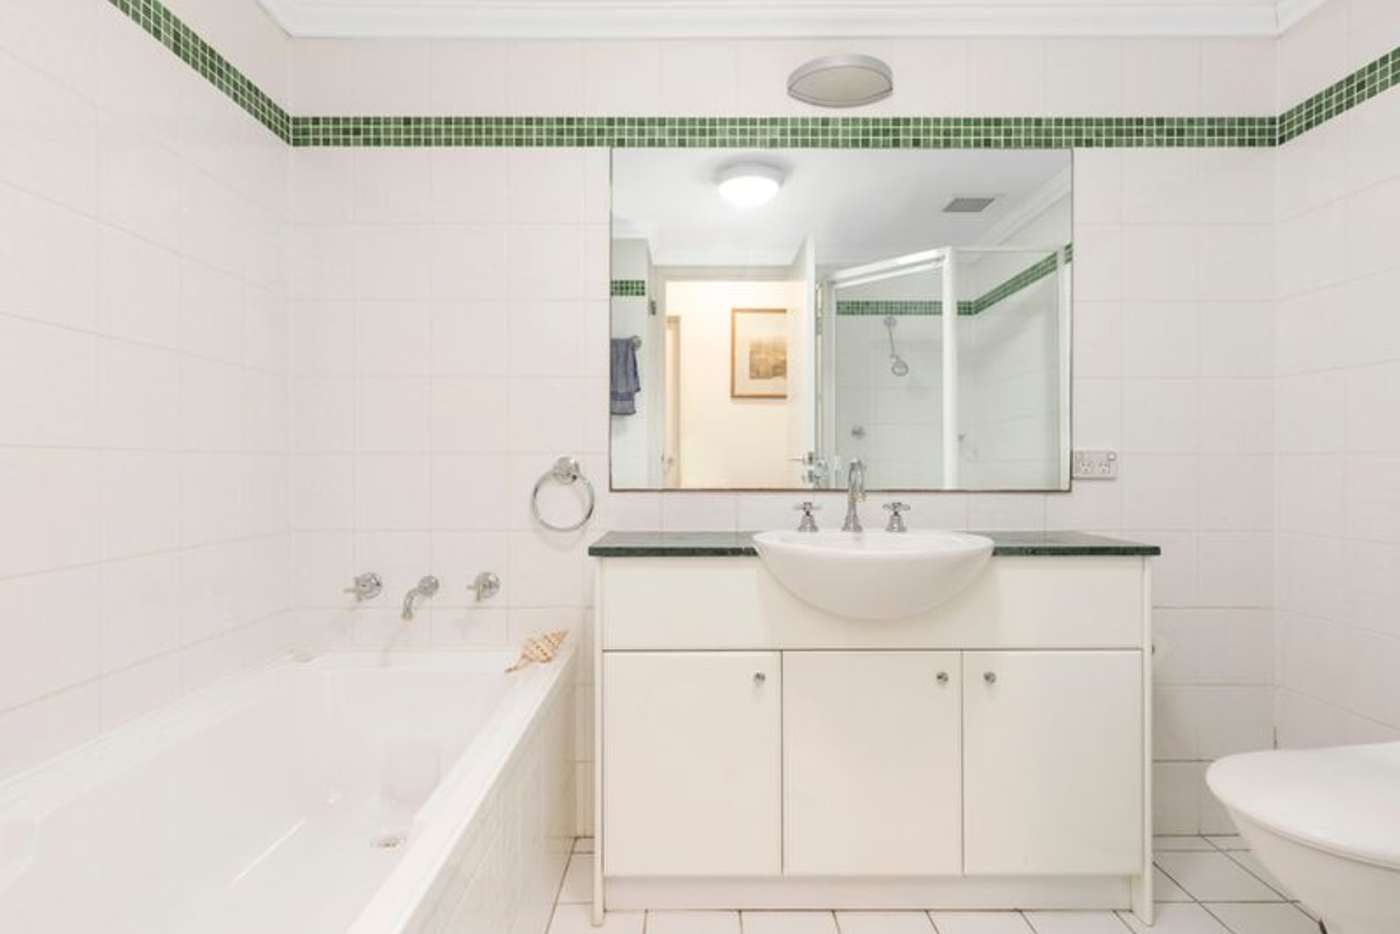 Seventh view of Homely apartment listing, 105/8 Wentworth Drive, Liberty Grove NSW 2138